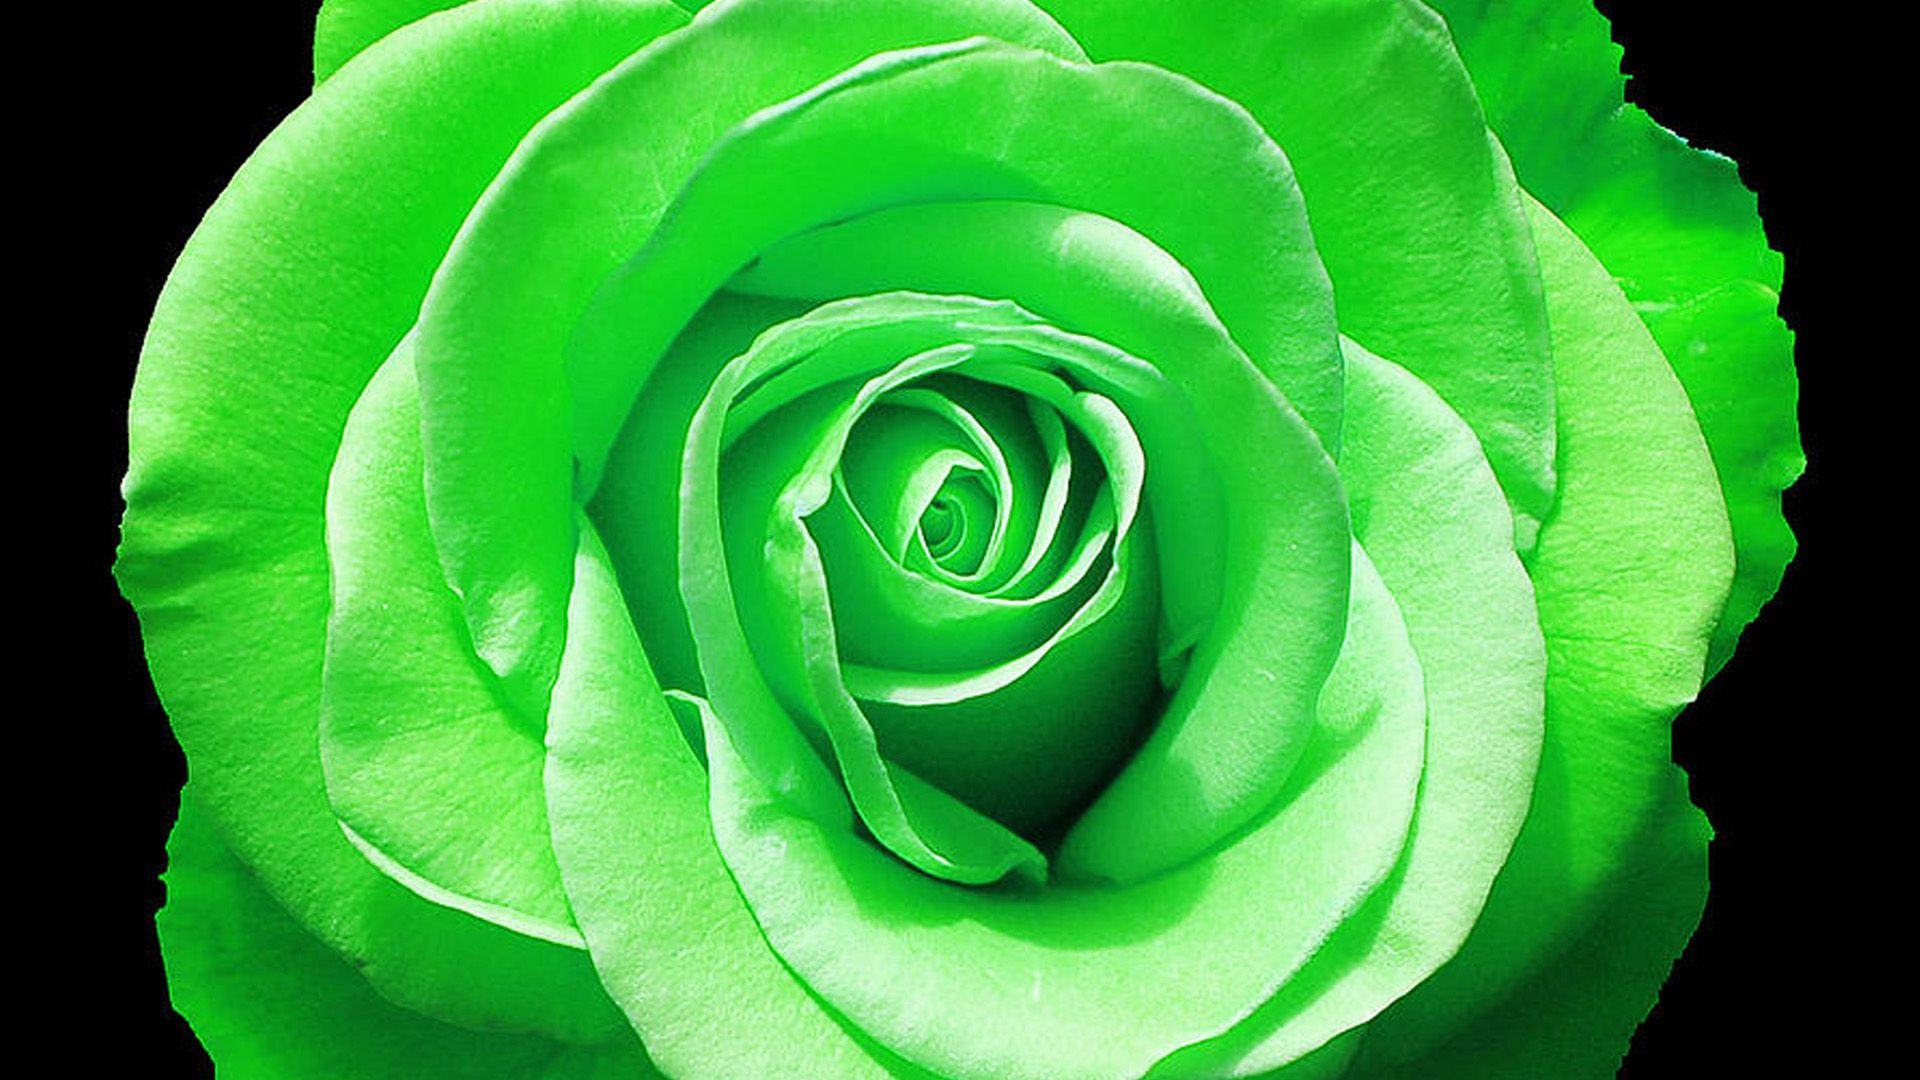 green rose in full bloom wallpapers rose wallpaper